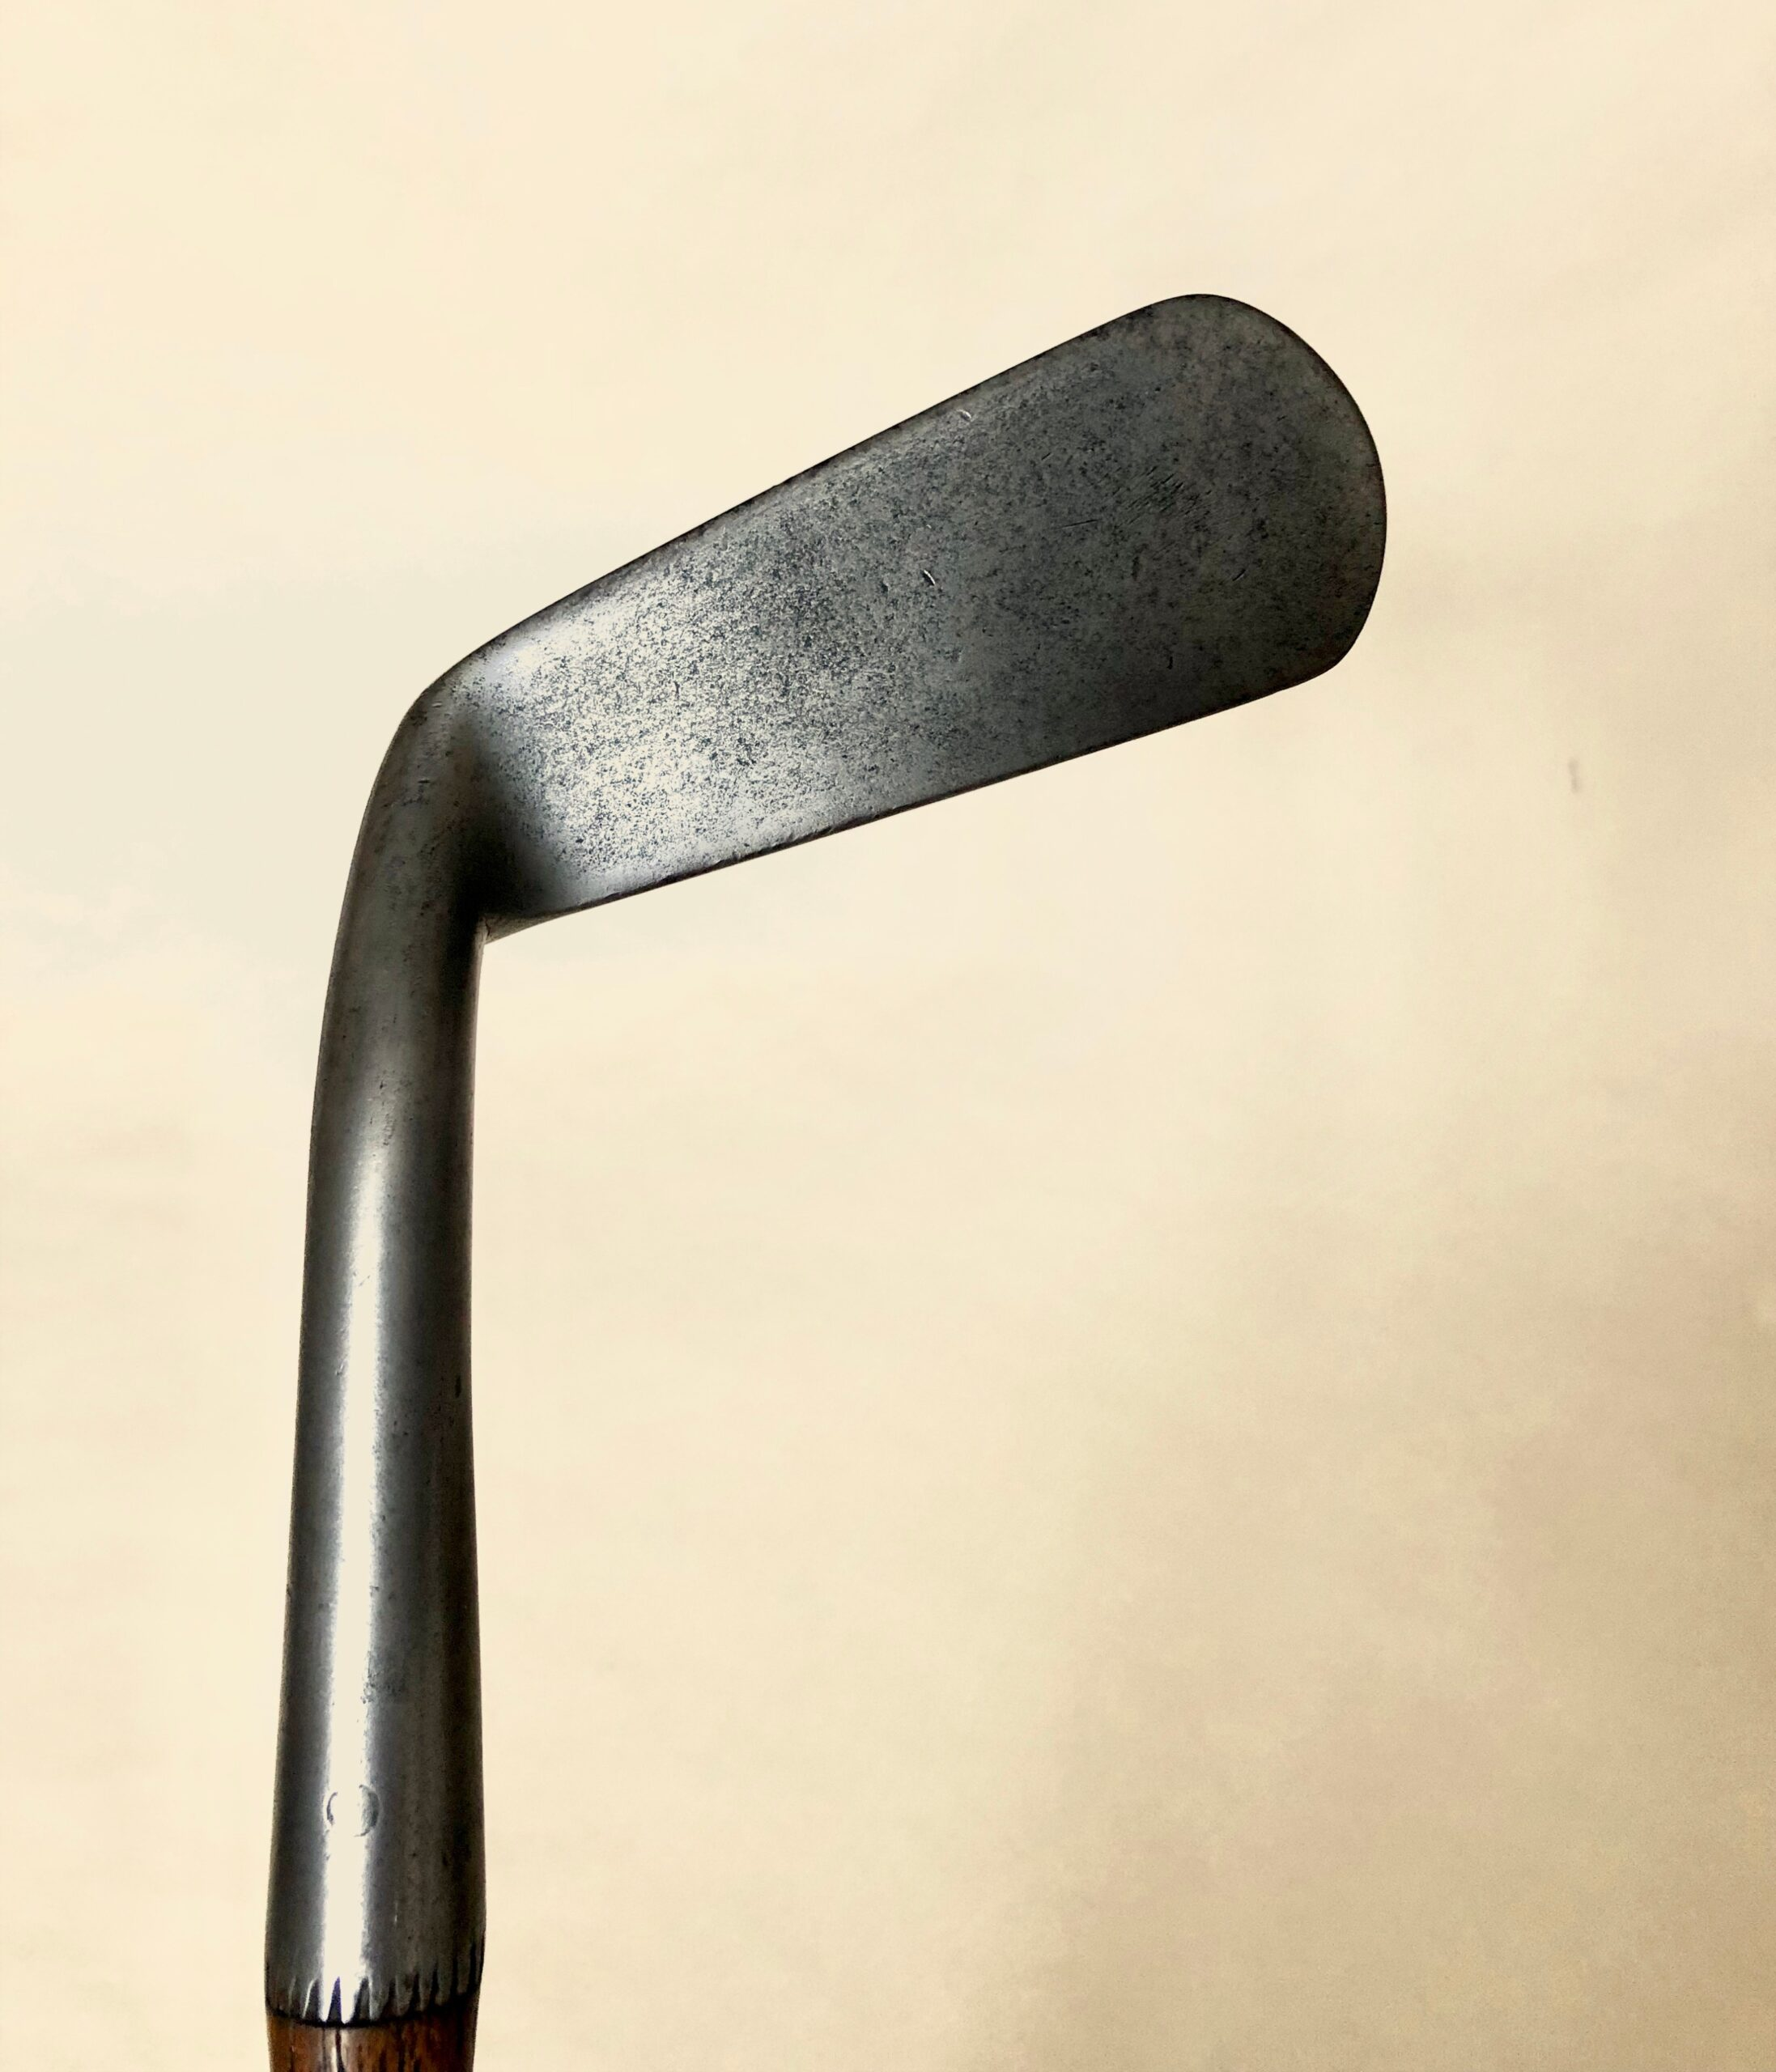 Patent 'Wry-neck' Putter by Willie Park Jr.